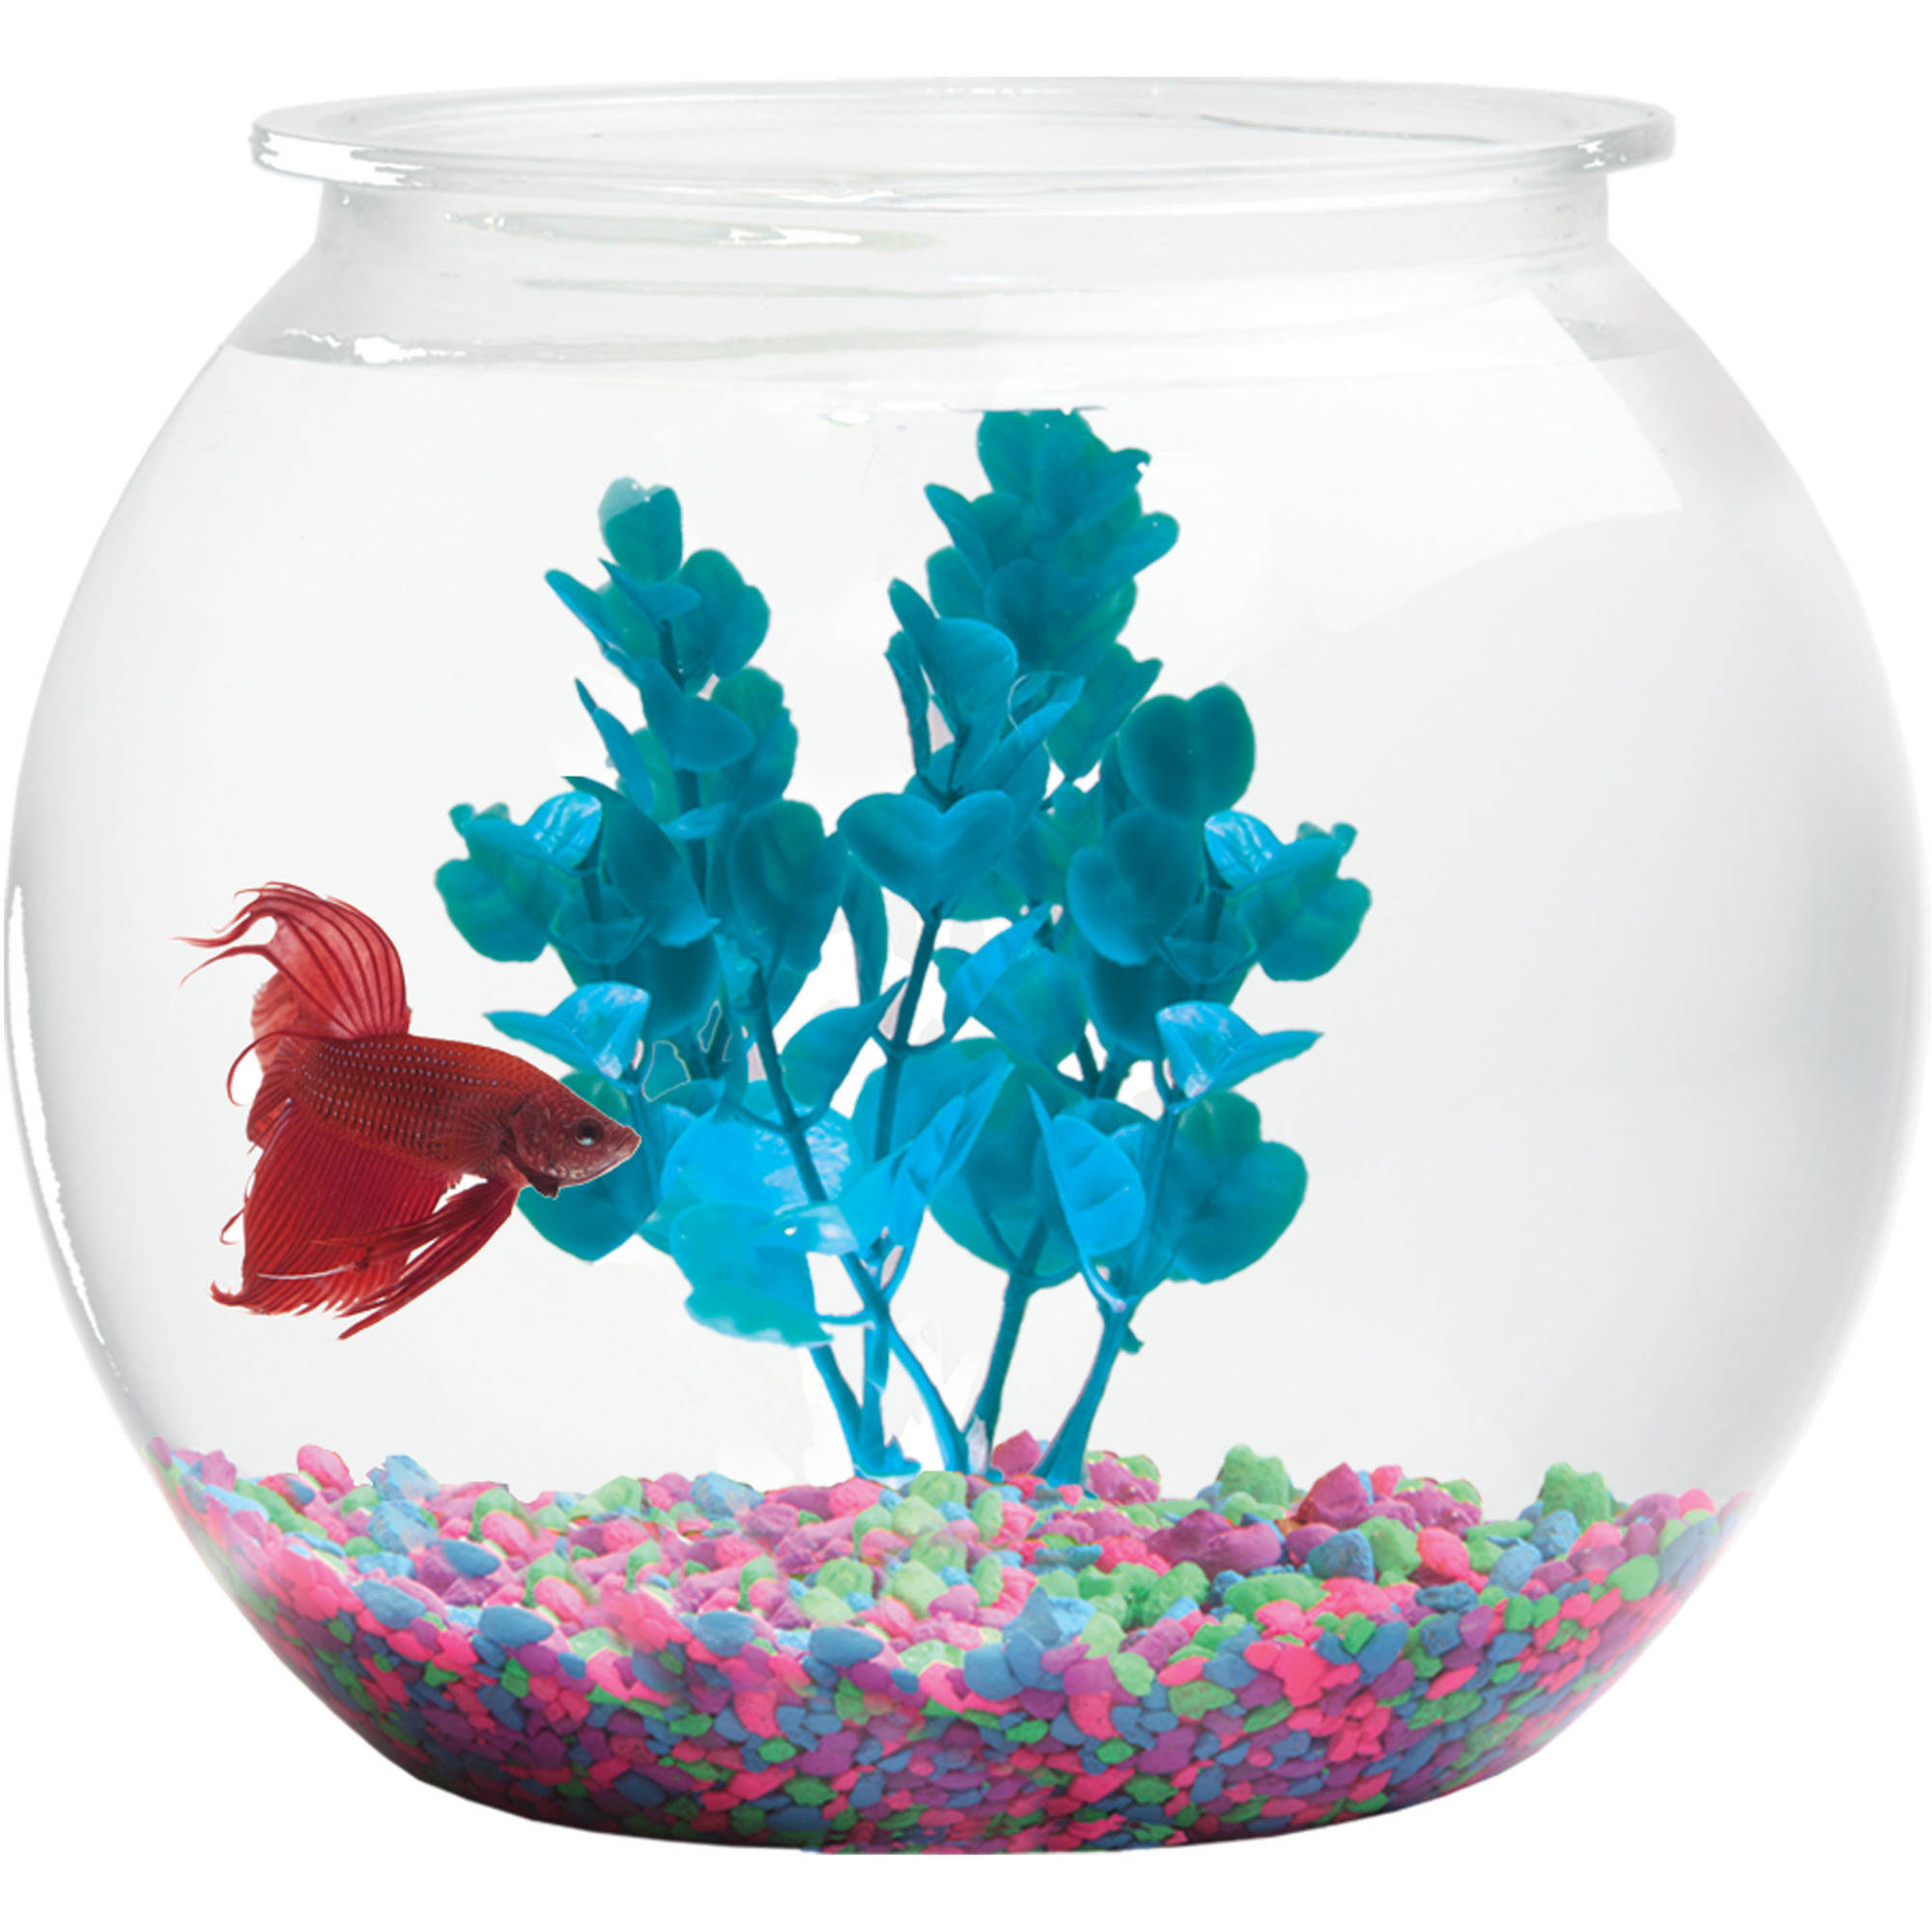 Hawkeye 2-Gallon Shatterproof Plastic Fish Bowl